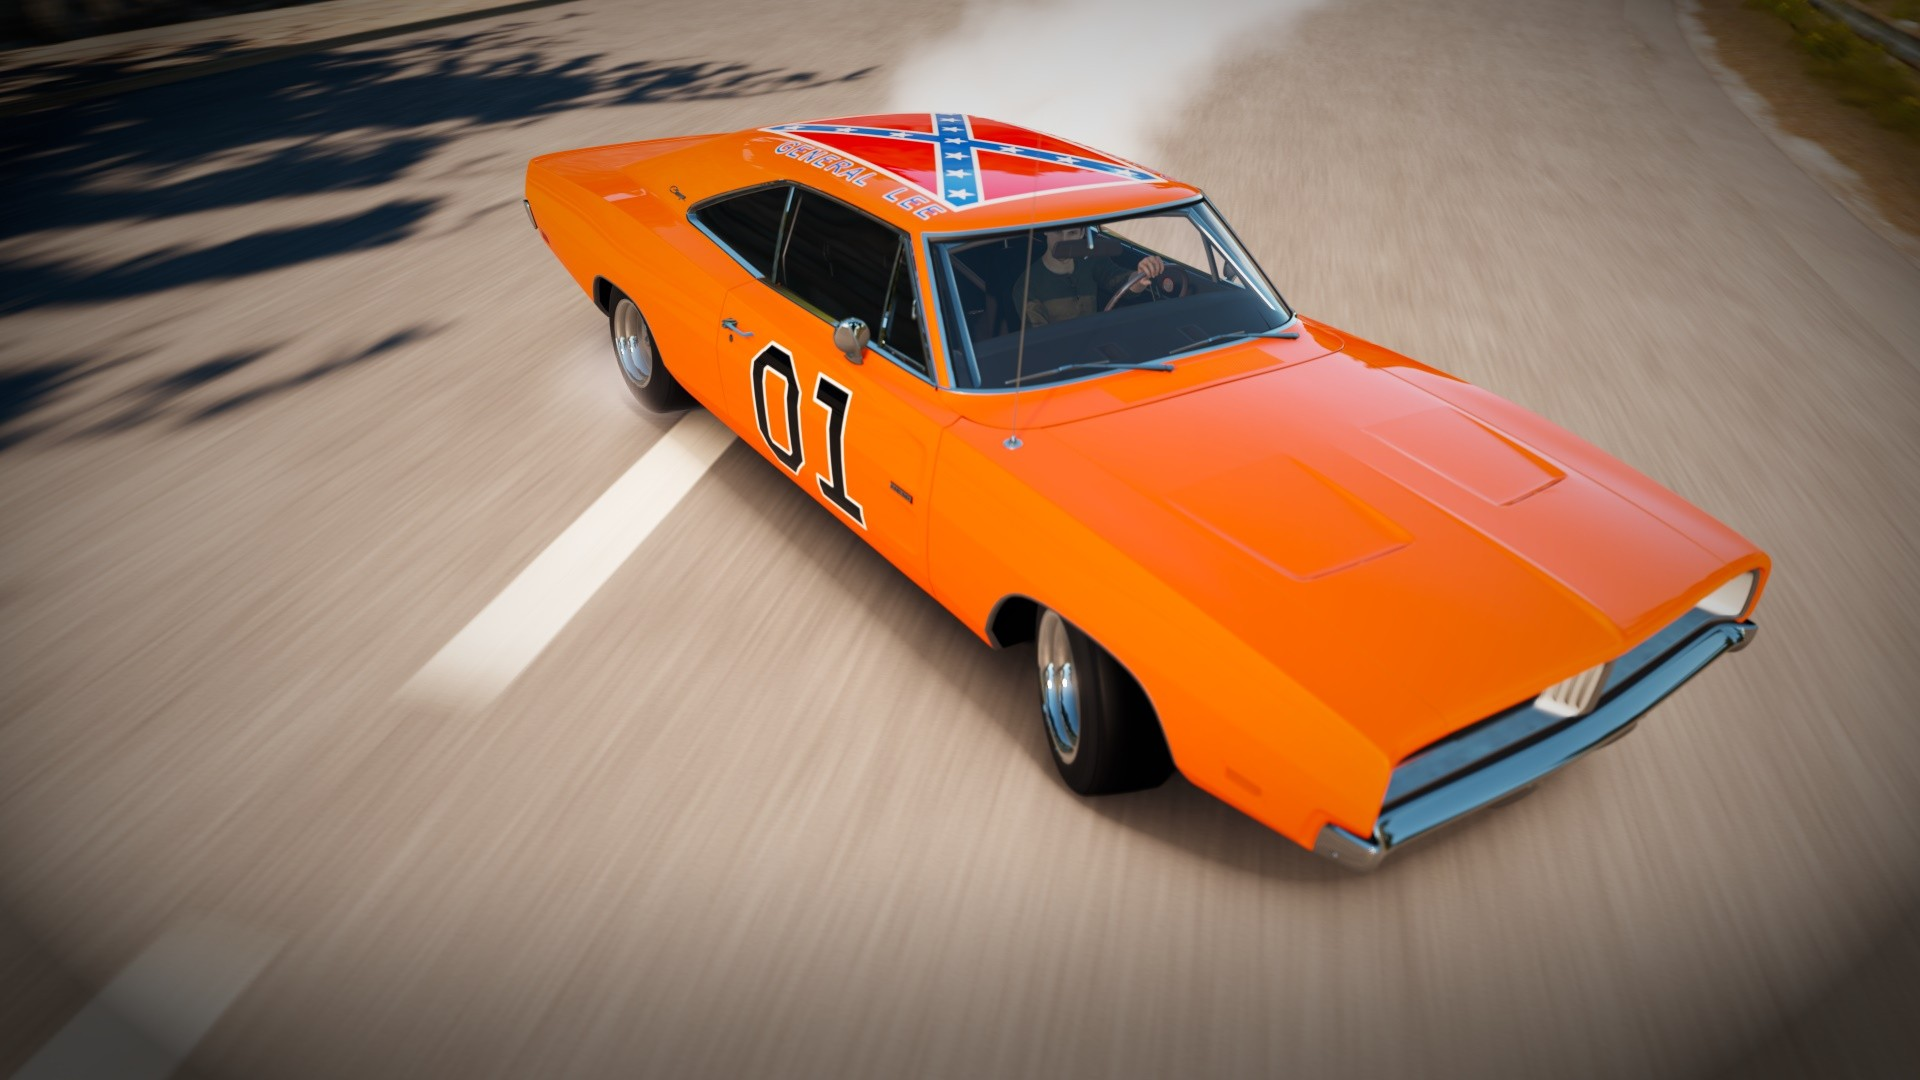 Muscle Cars Burnout Wallpapers Forza Horizon 2 Forza Horizon Forza Motorsport Charger